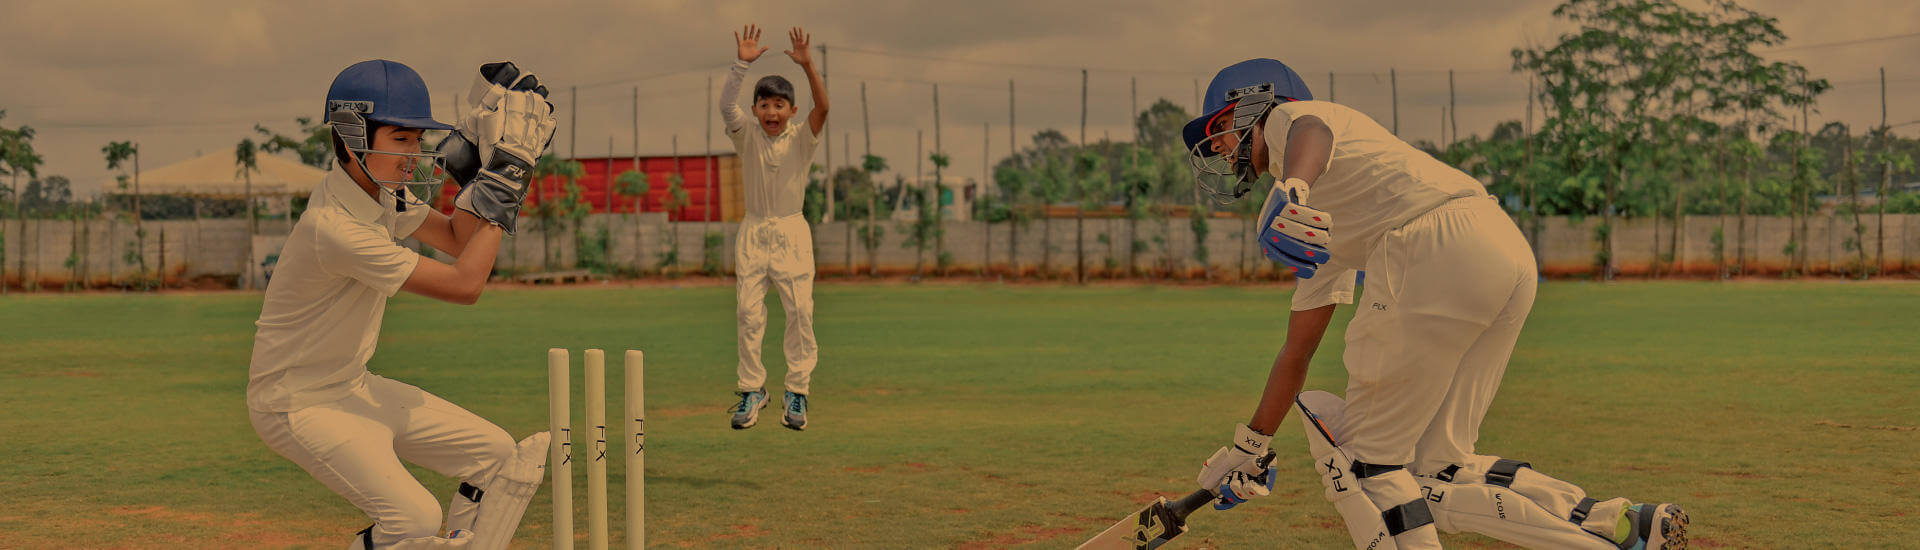 Cricket - Are You a Player or a Spectator?